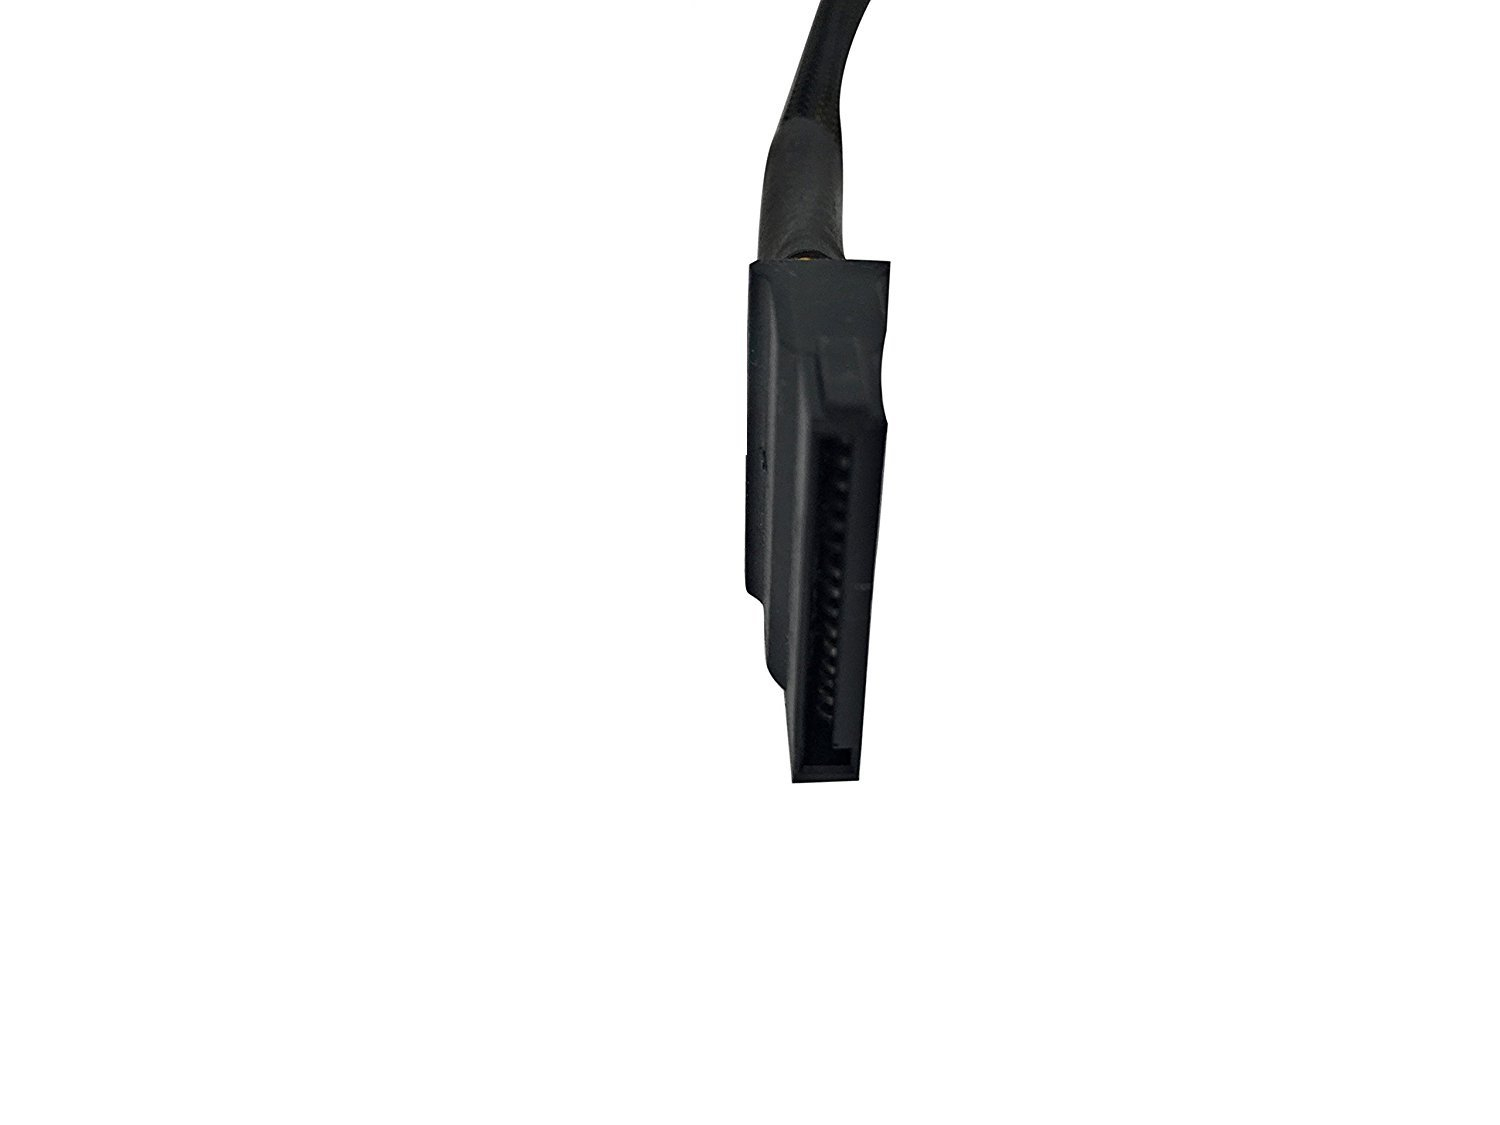 Eyeboot SATA 15P x 2 to 6-Pin Power Supply Cable for SSD hard disk CD-ROM by Eyeboot (Image #4)